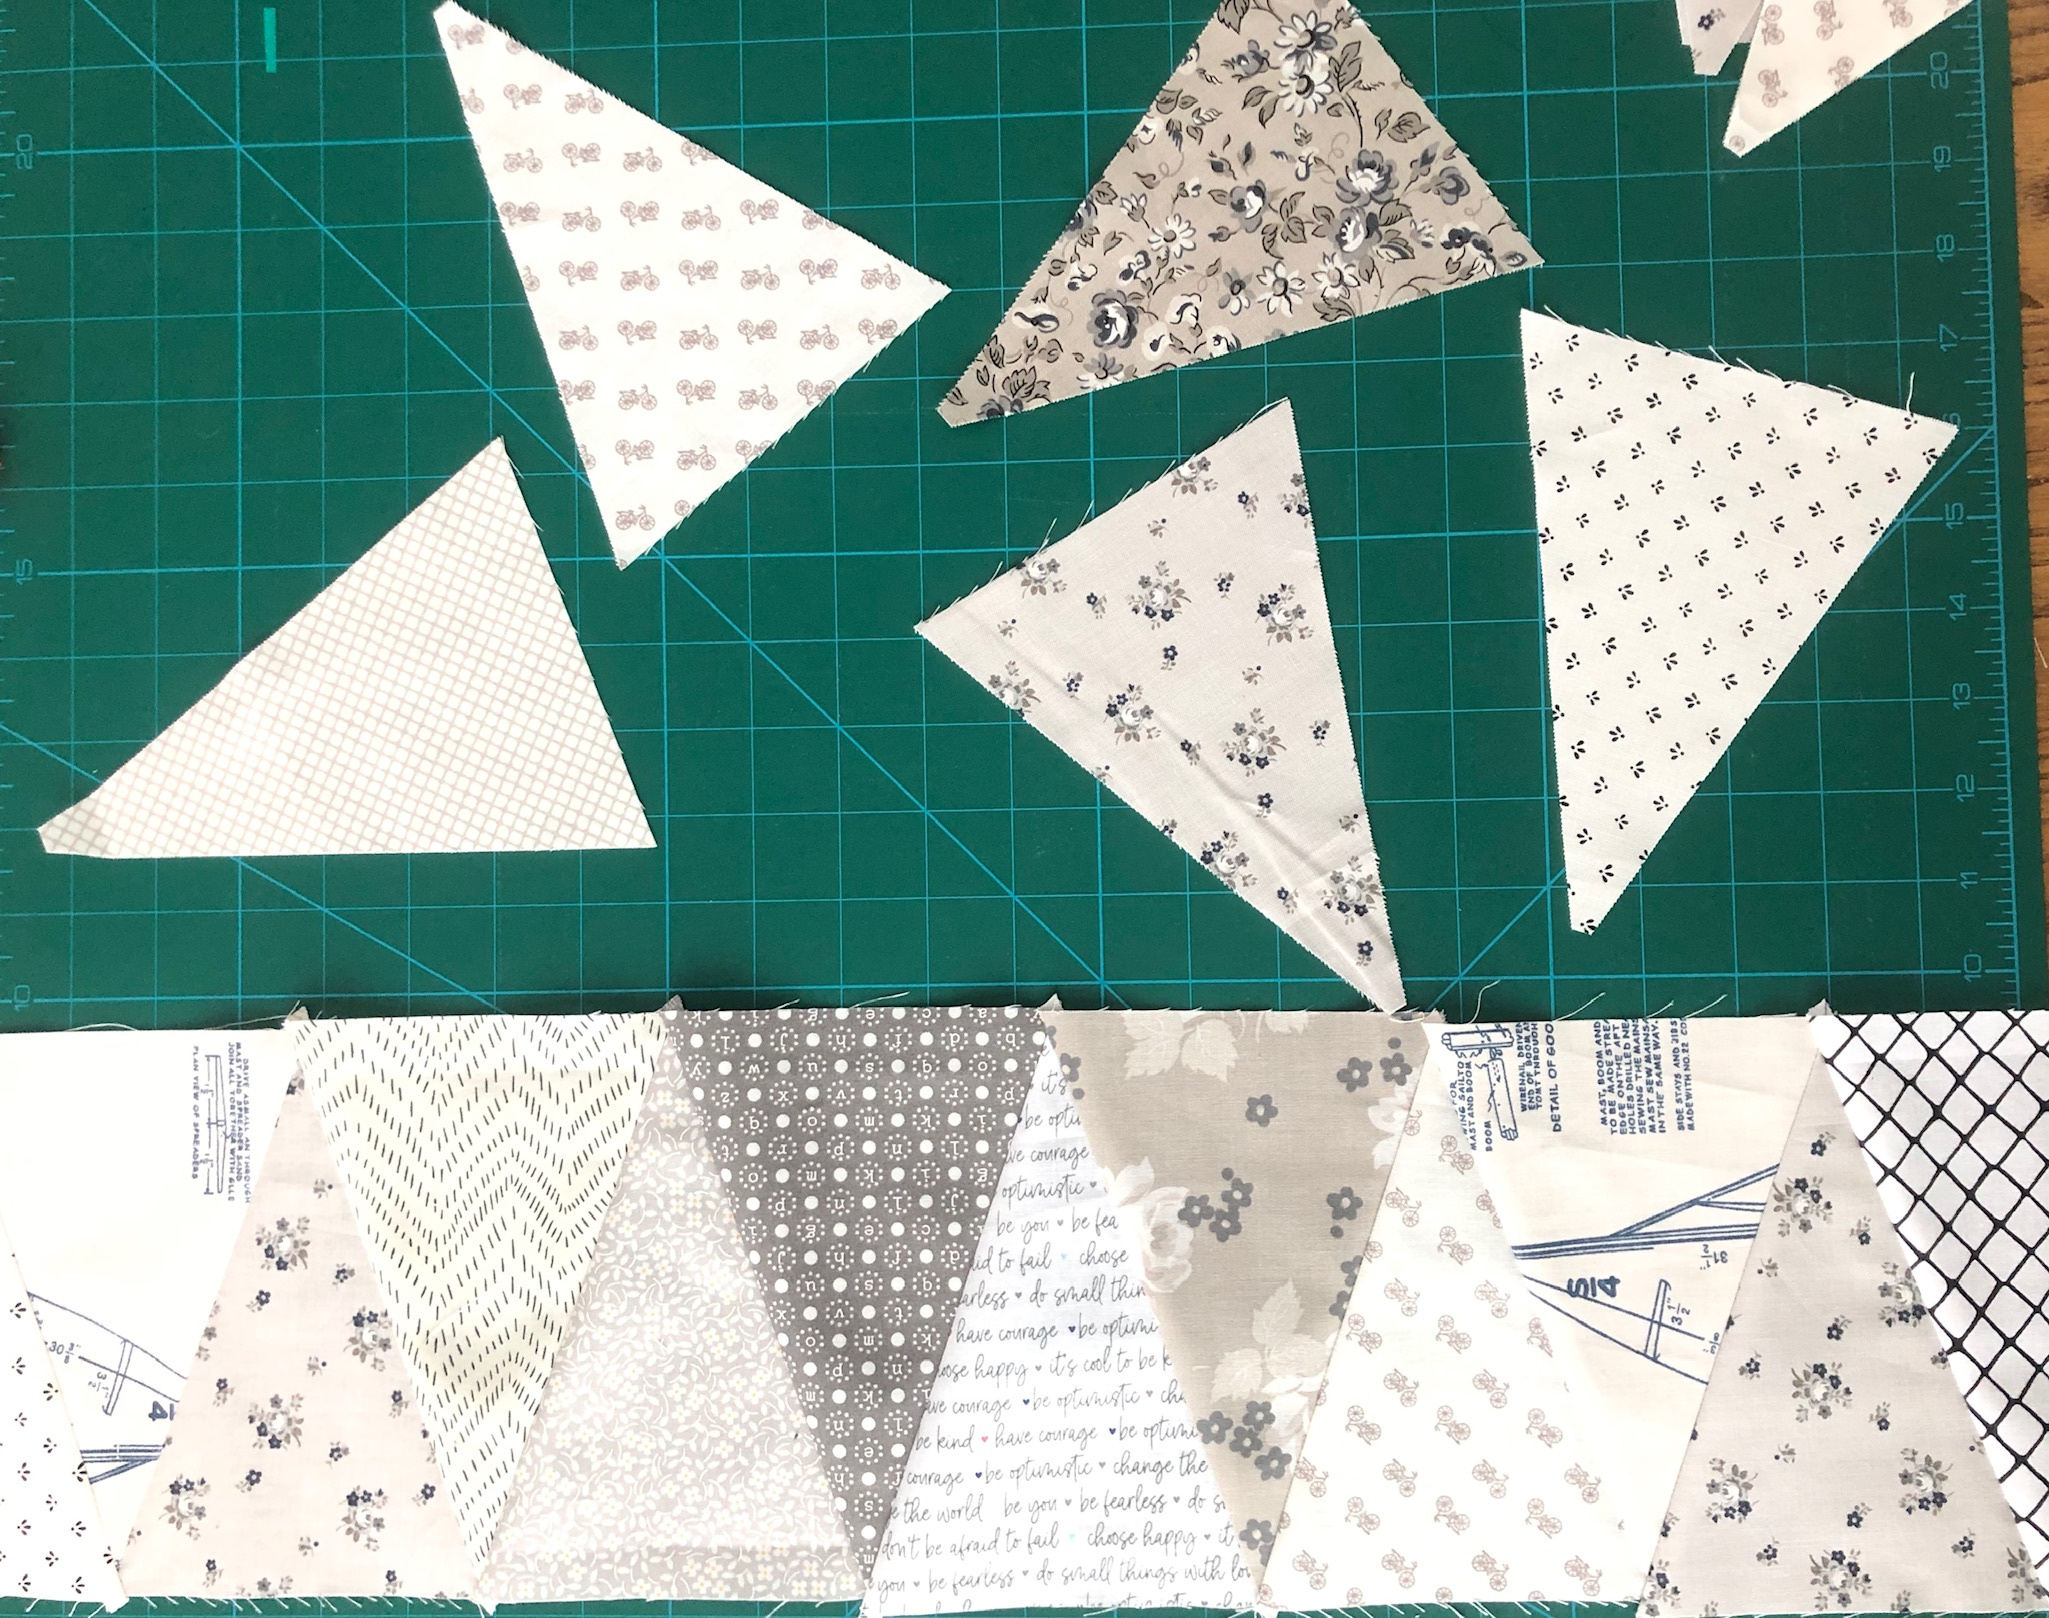 fabric cut into equilateral triangles on a self-healing cutting mat above a row of equilateral triangles sewn together into a rectangle